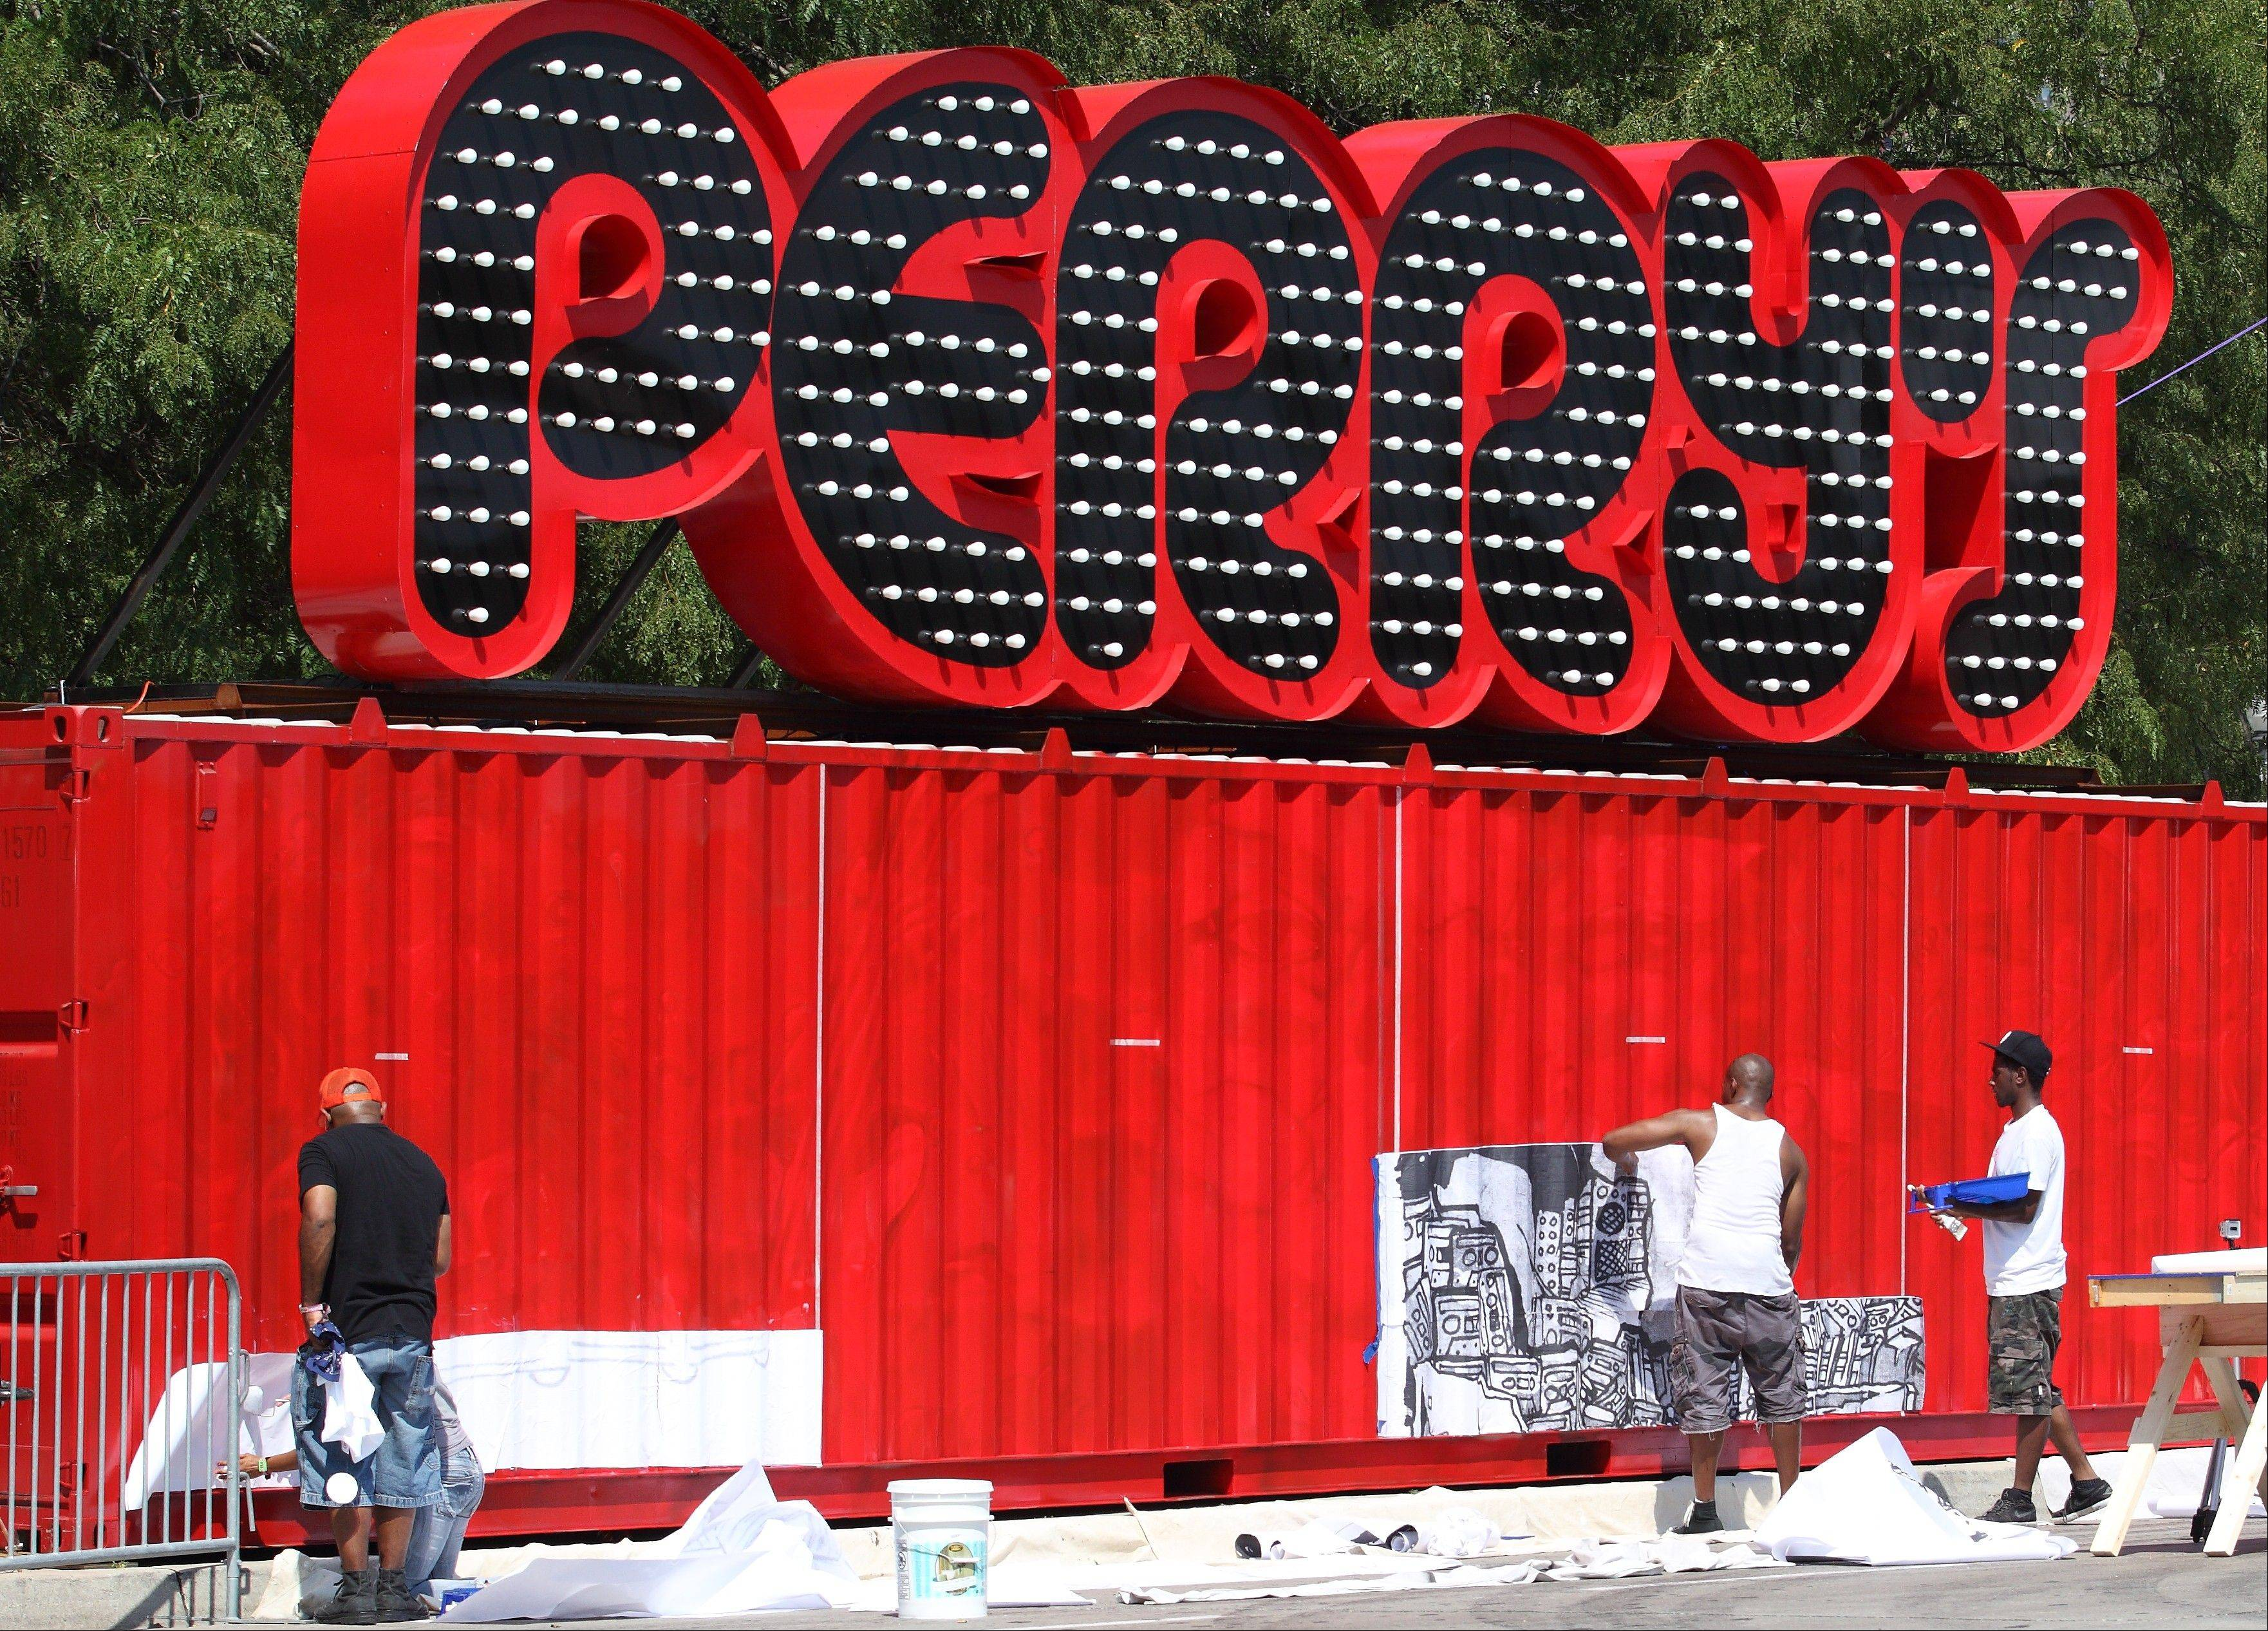 rtists put the finishing touches on the Perry's Stage sign at Lollapalooza in Chicago's Grant Park on Friday, Aug. 3, 2012.